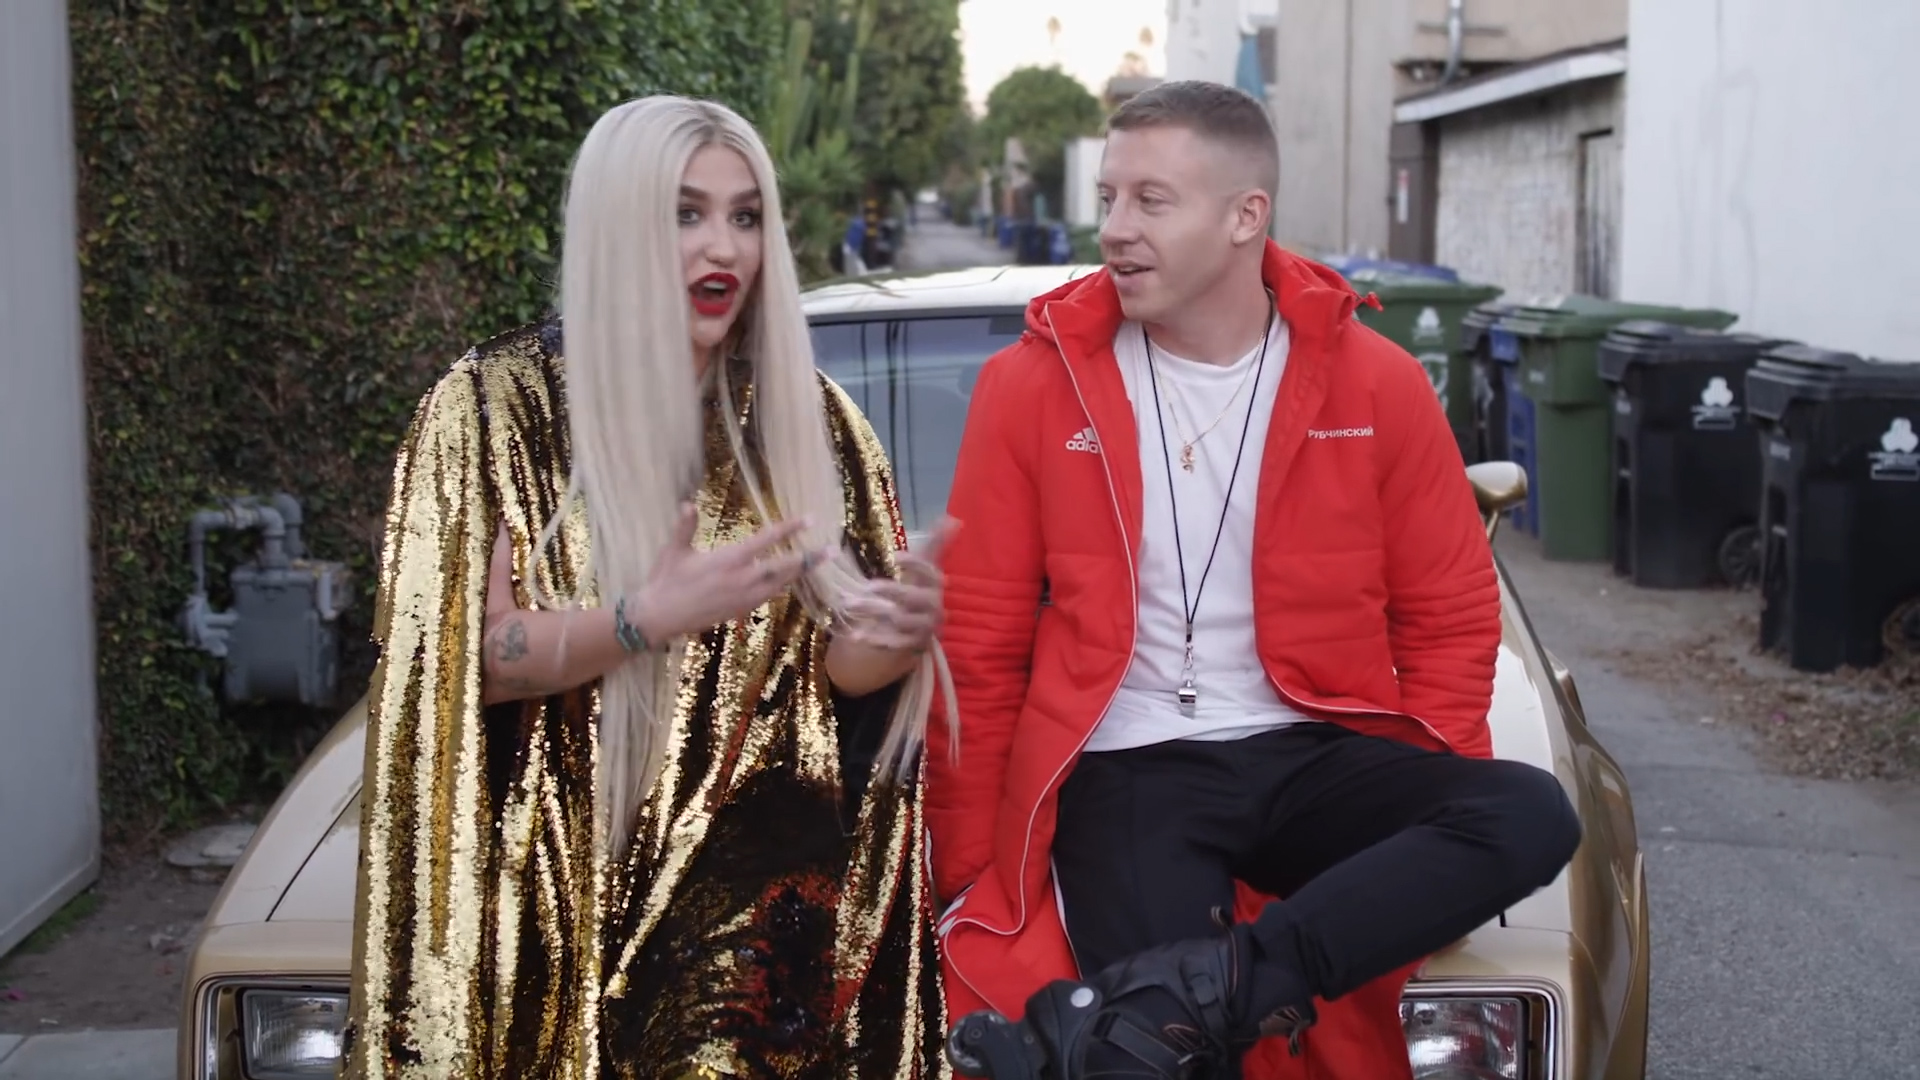 kesha and macklemore are touring together, donating to charity - nowthis